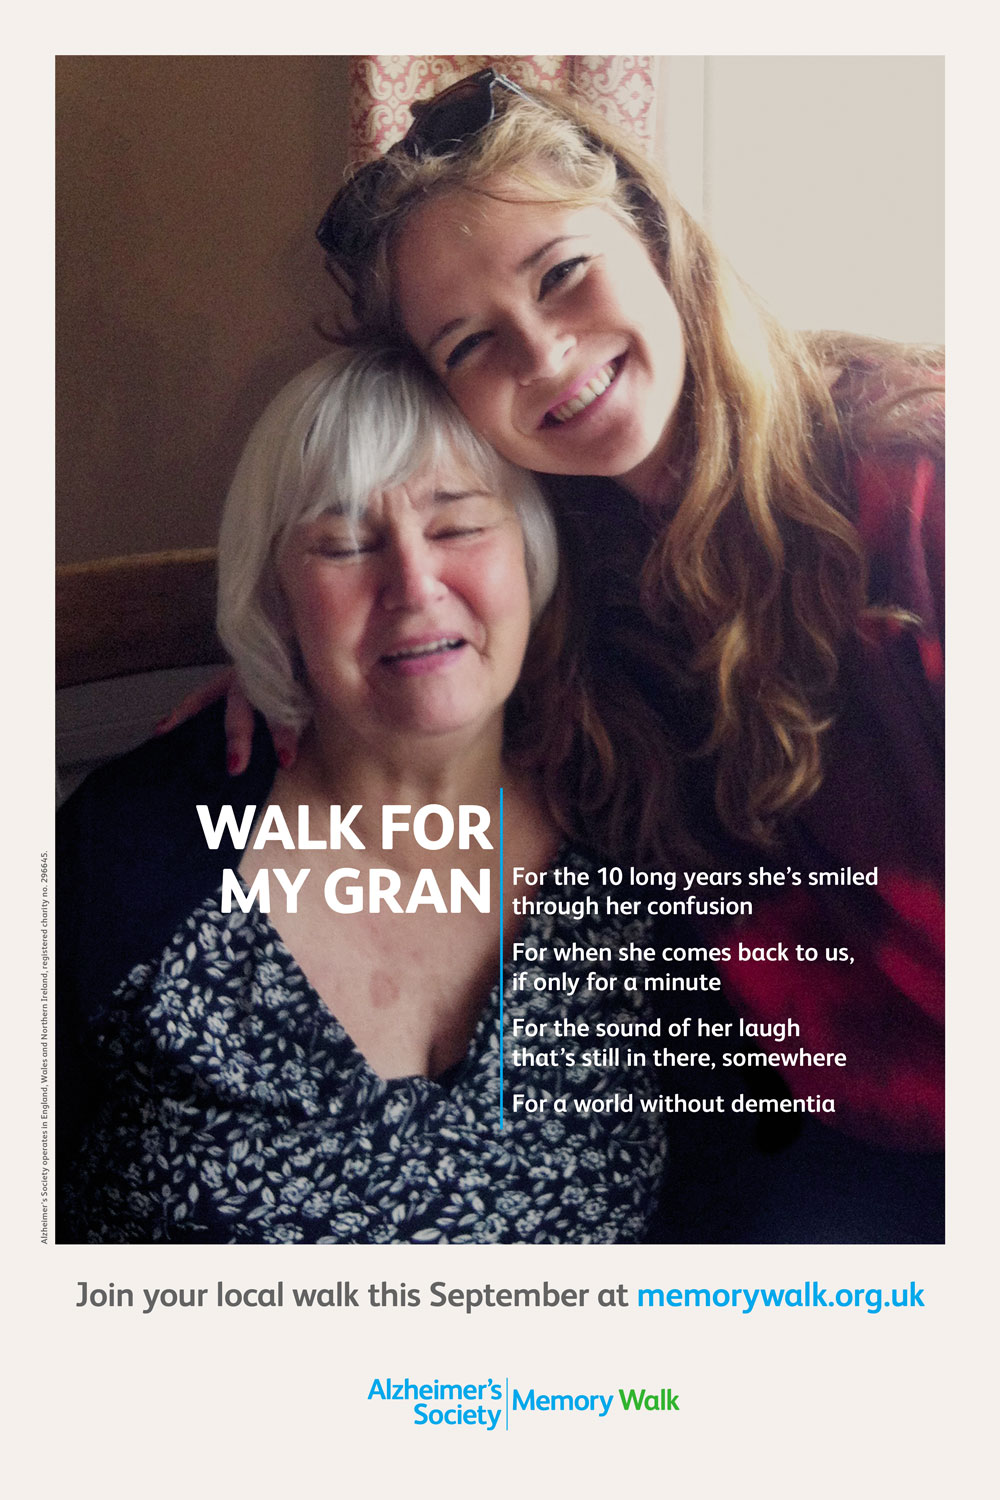 editS36-29206-MWalk-Wife_Gran-4-Sheet2